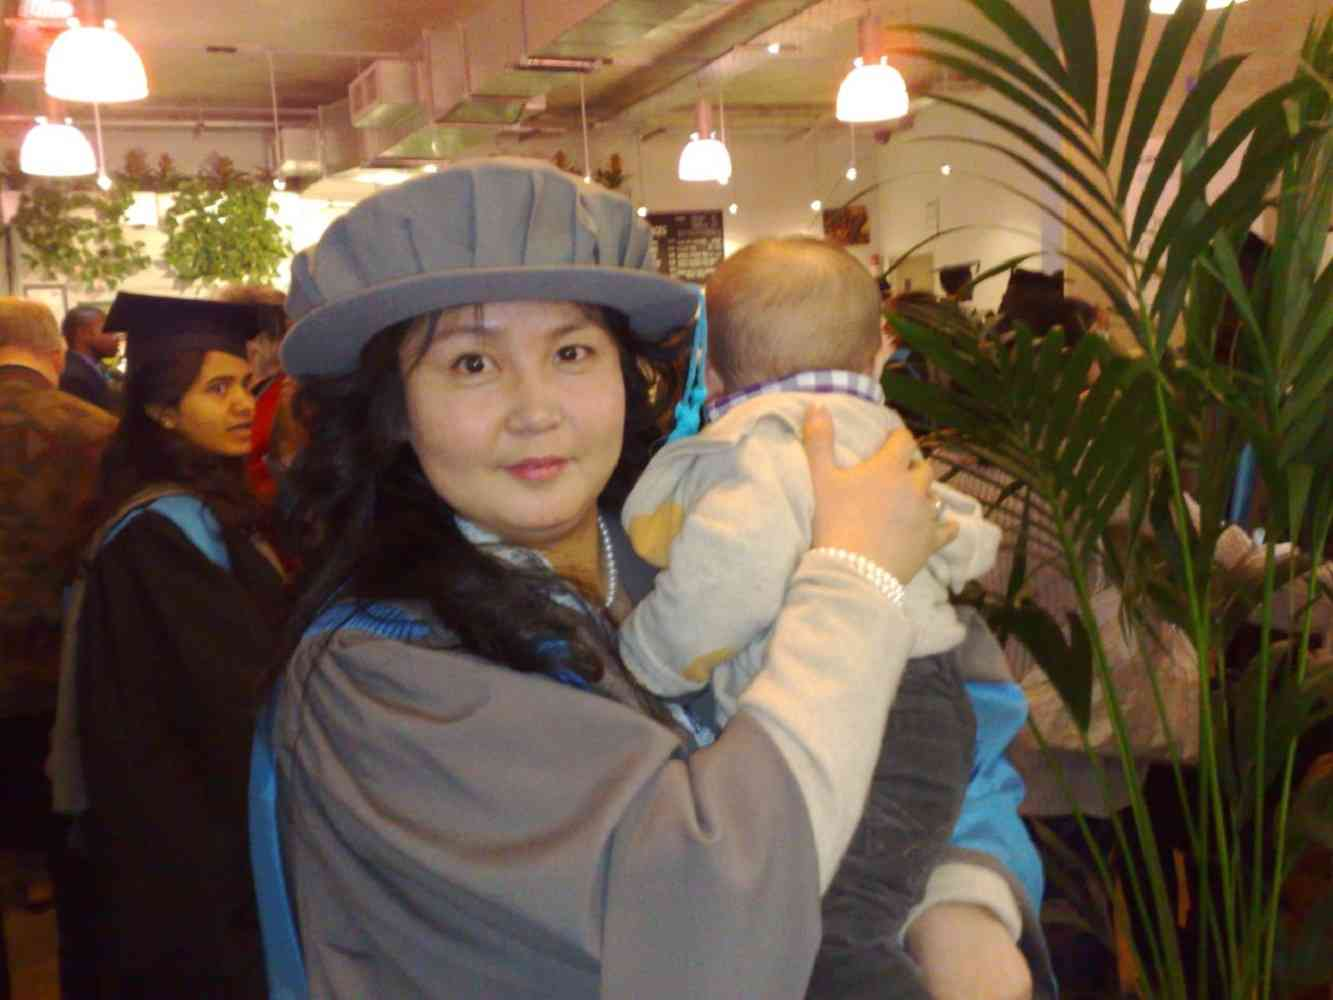 Dr Munkhchimeg (Moon) Ganbold and child - Graduation Day